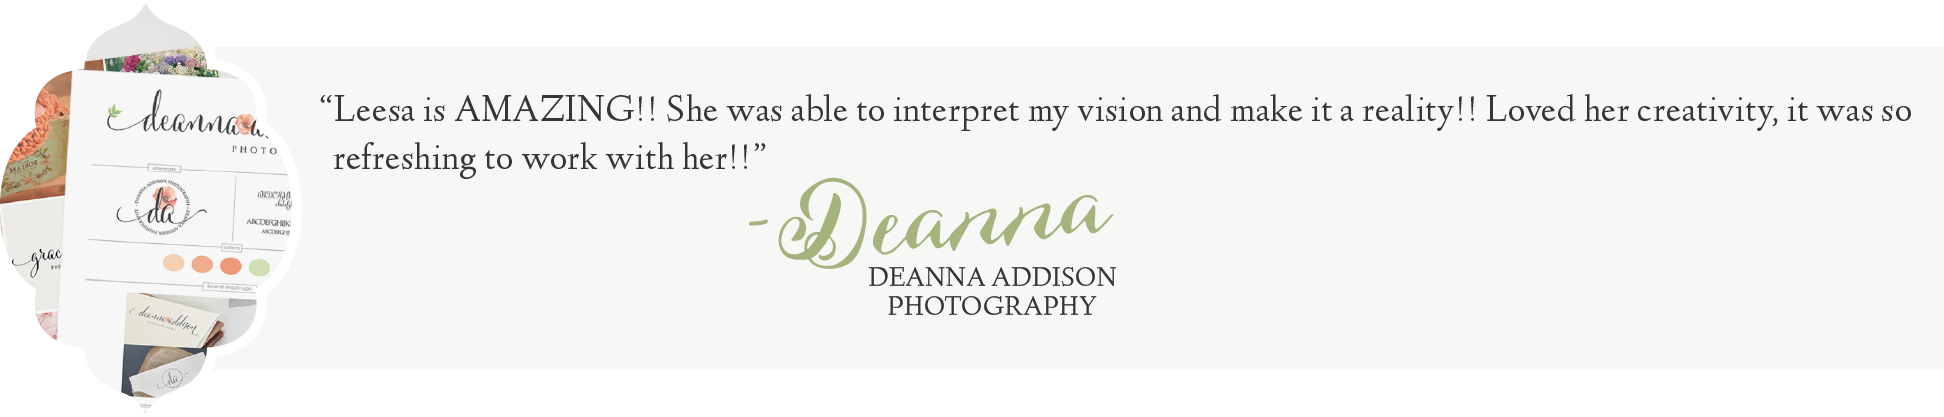 Leesa Dykstra Designs - Review Deanna Addison Photography